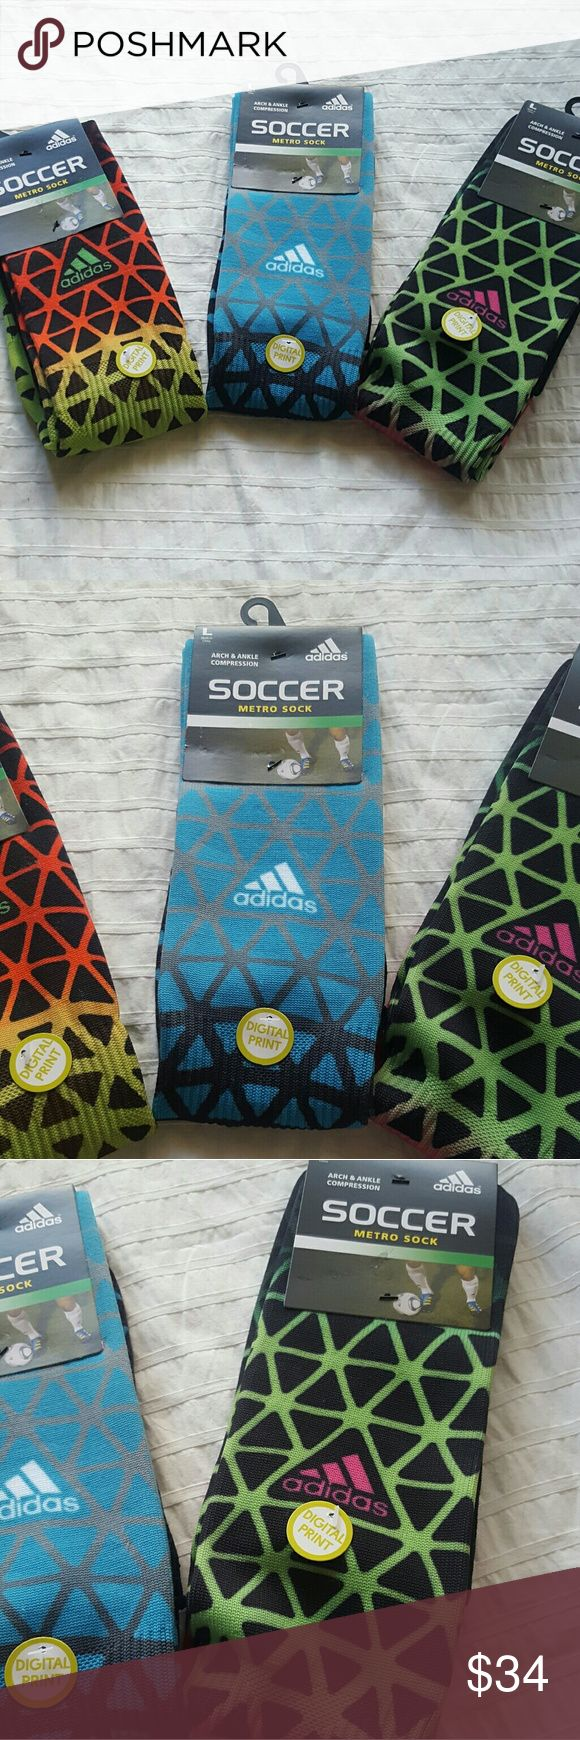 Adidas Soccer Sock Bundle of 3 - L Bundle of 3 NWT Adidas Soccer Socks.  All socks in the bundle ate size Large.   Features arch and ankle compression for added stability and a fun pattern.   #adidas #soccersocks #soccer #socks Adidas Underwear & Socks Athletic Socks